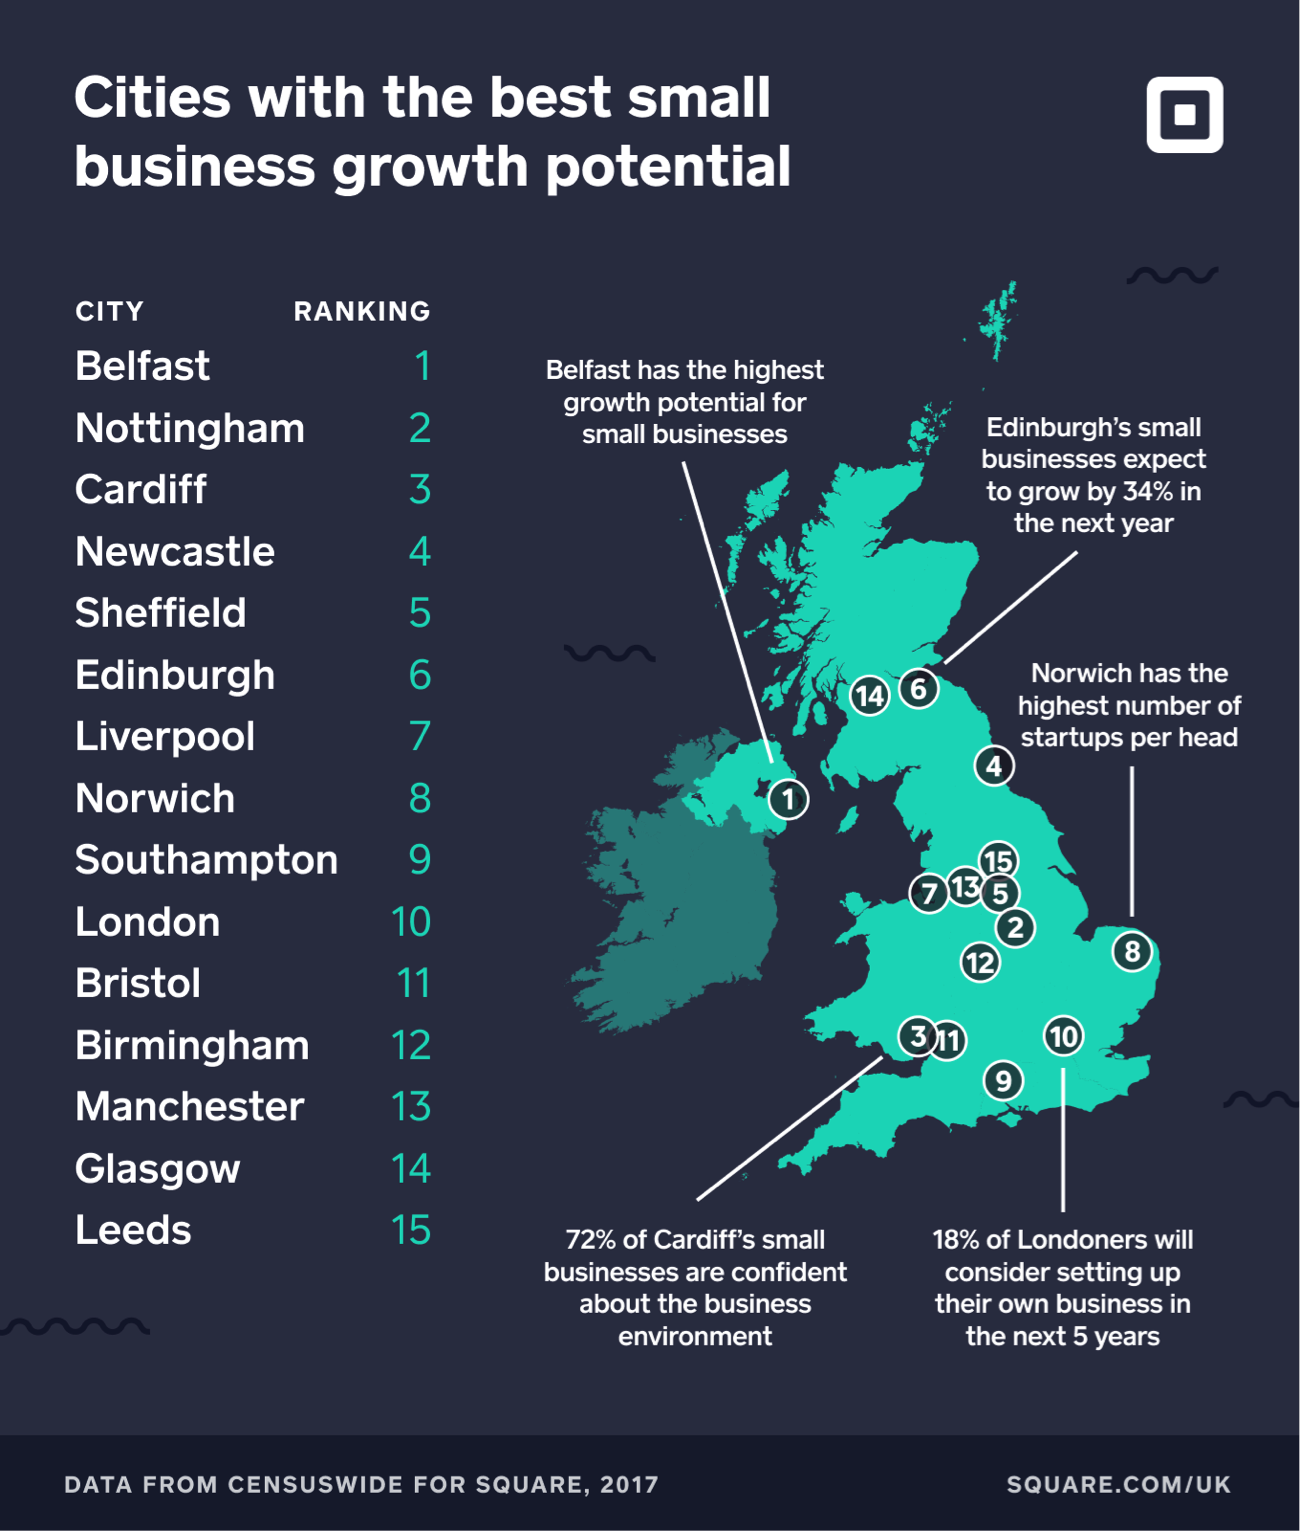 ranking of cities with the best small business growth potential